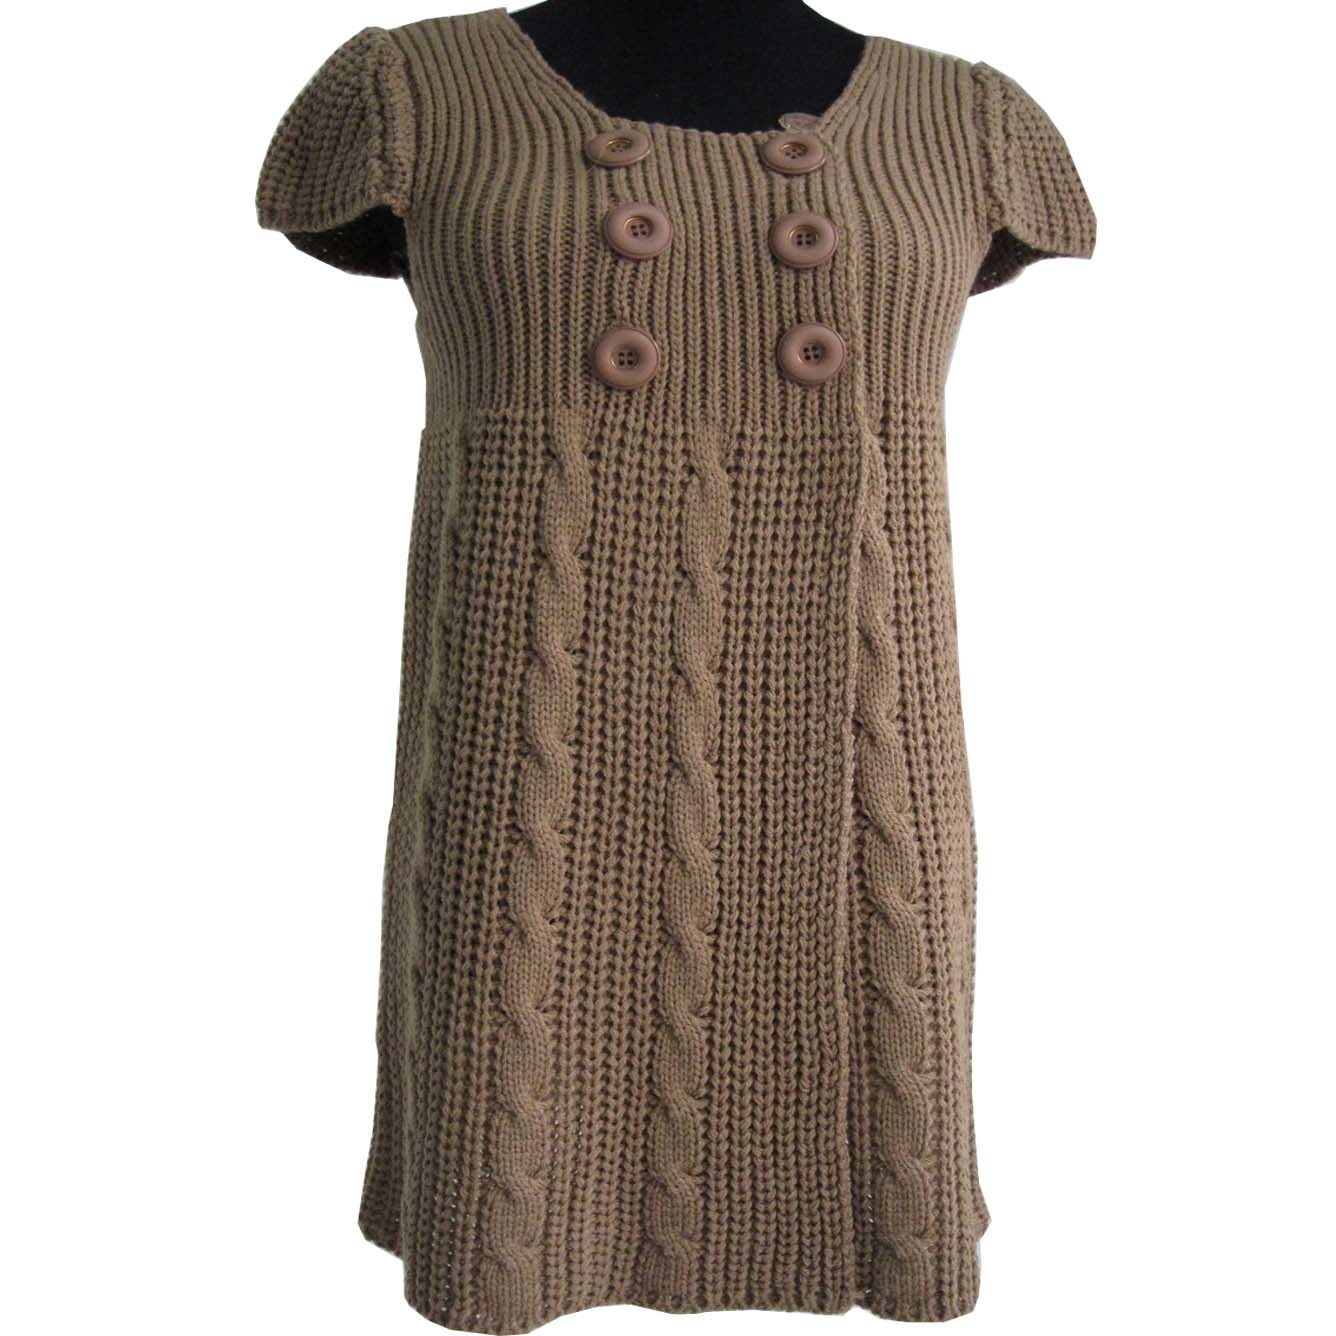 Knitting Pattern Jumper Dress : Knit Dresses For Women Women Dresses